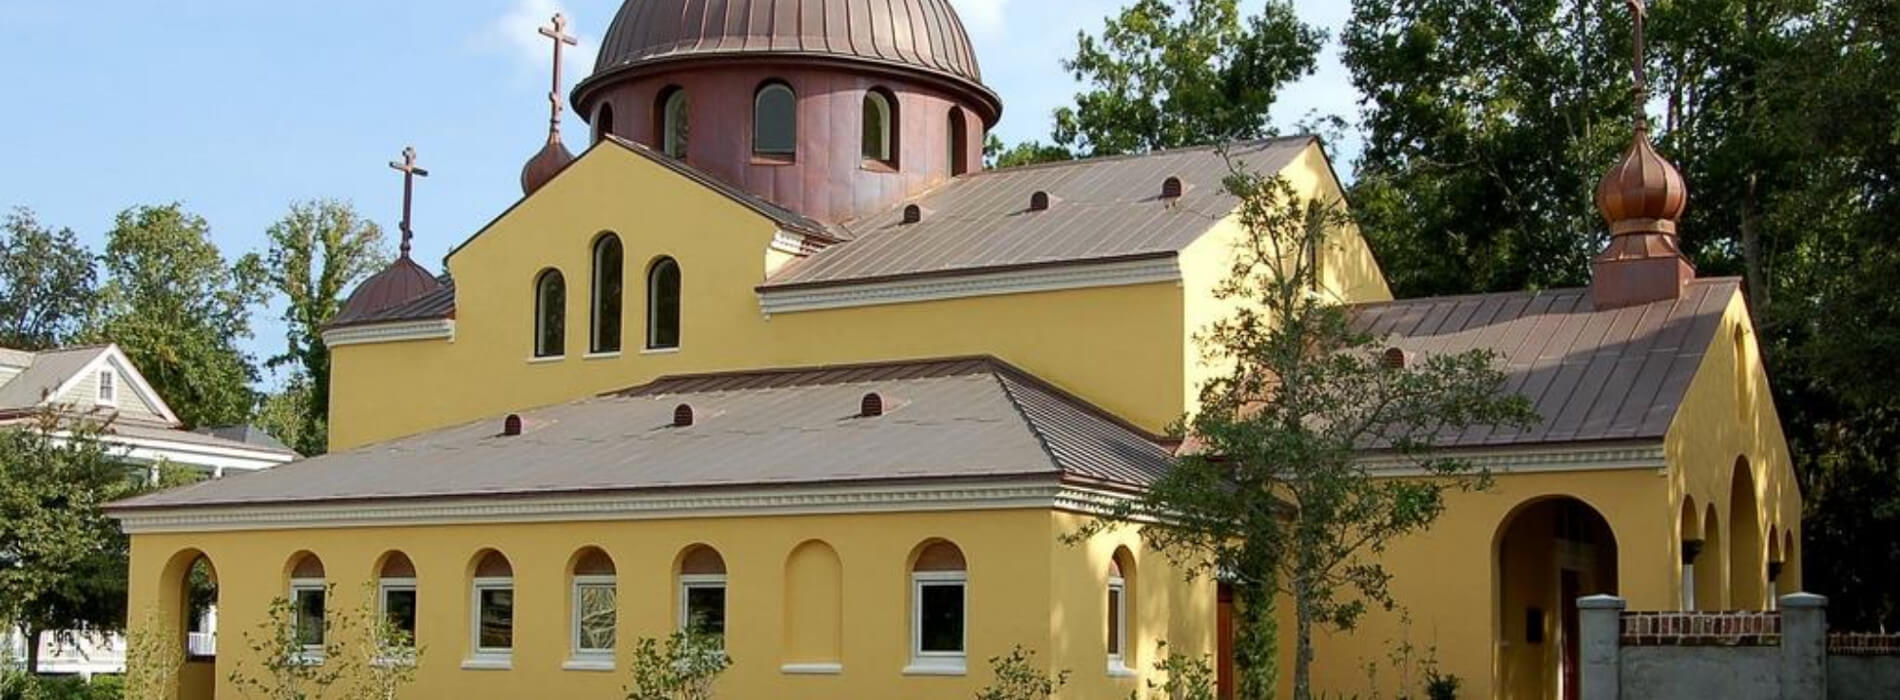 Holy Ascension Orthodox Church, Mount Pleasant, SC